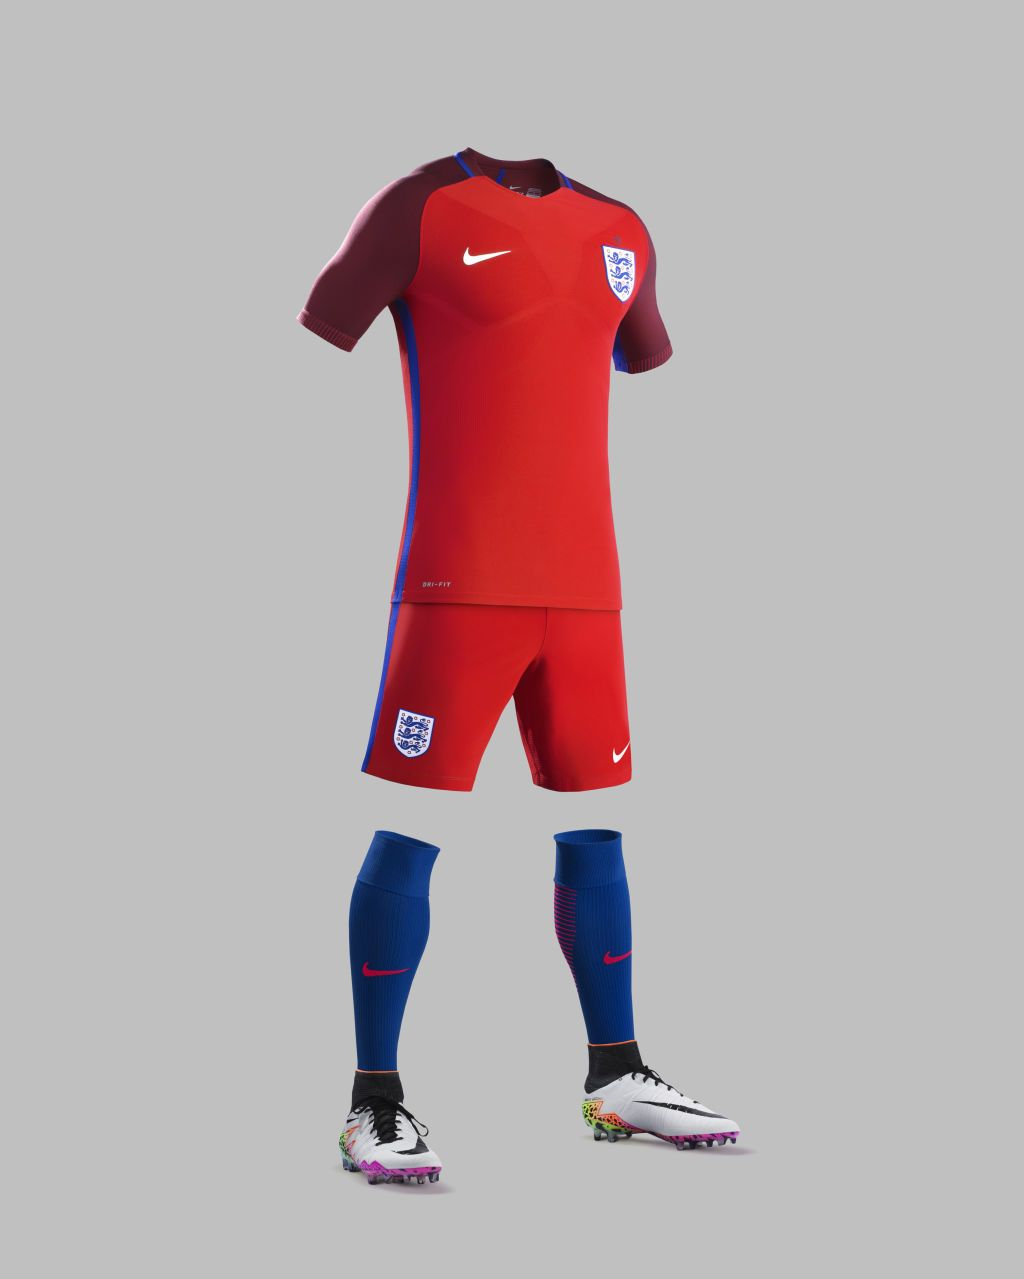 5698d2225 England have unveiled their new 2016 home and away kits ahead of this  summer s European Championships in France.